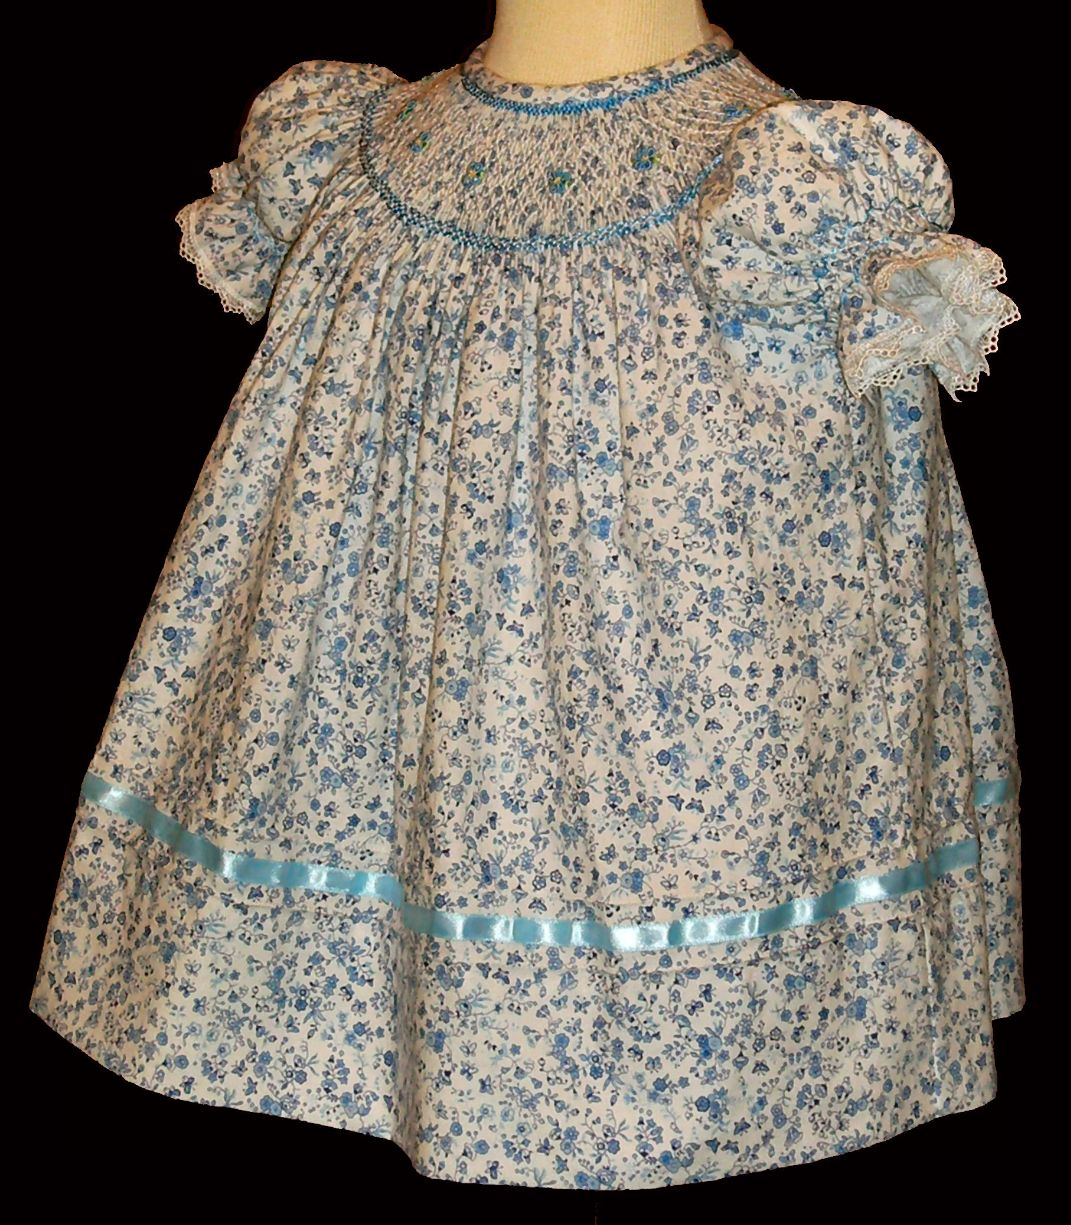 Bishop blue print Hand smocked dress - Sabrina